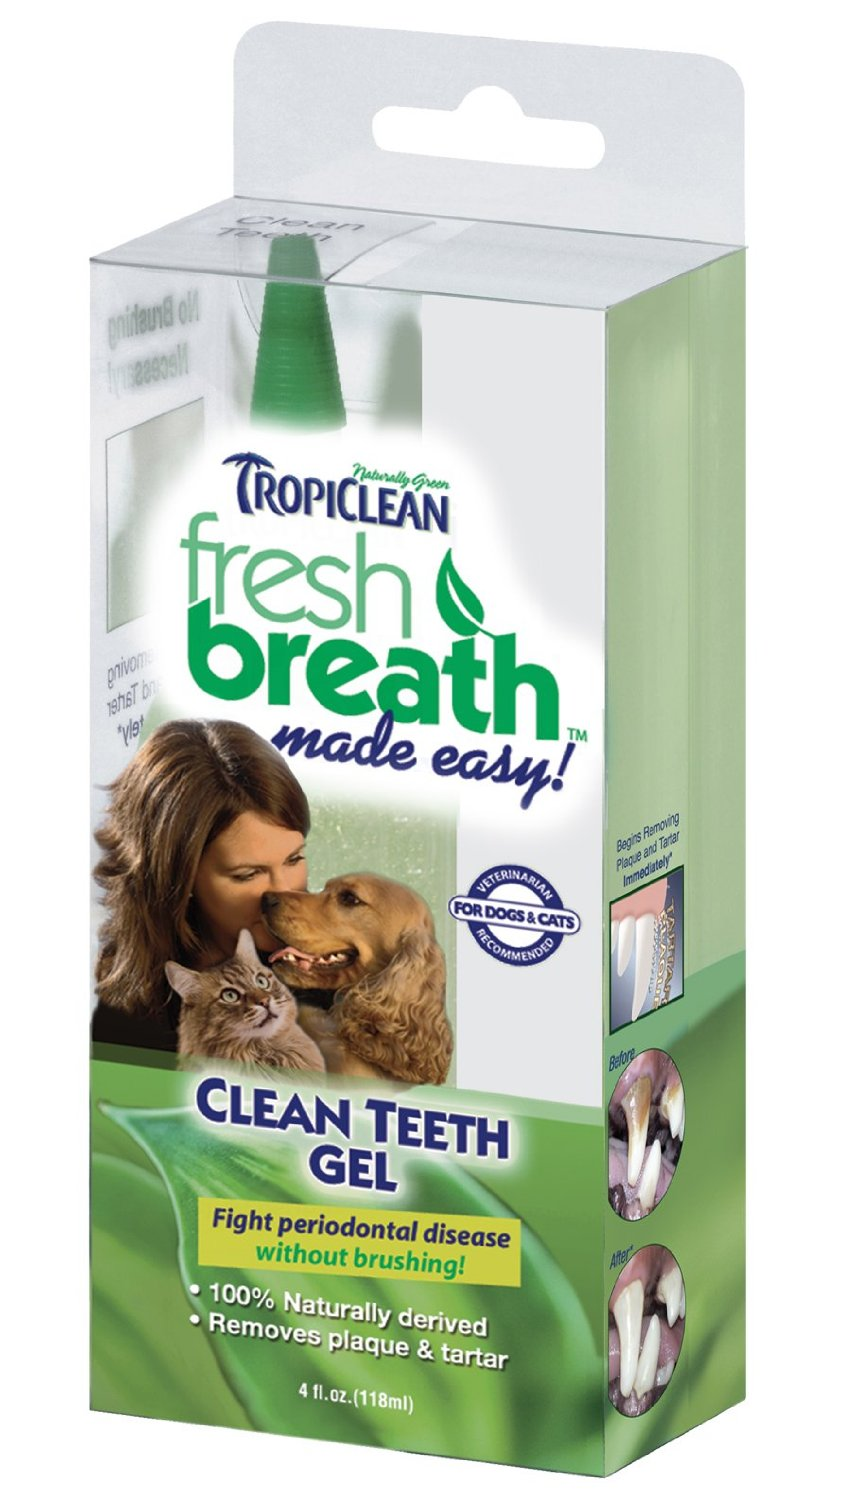 Tropiclean Fresh Breath Plaque Remover Pet Clean Teeth Gel